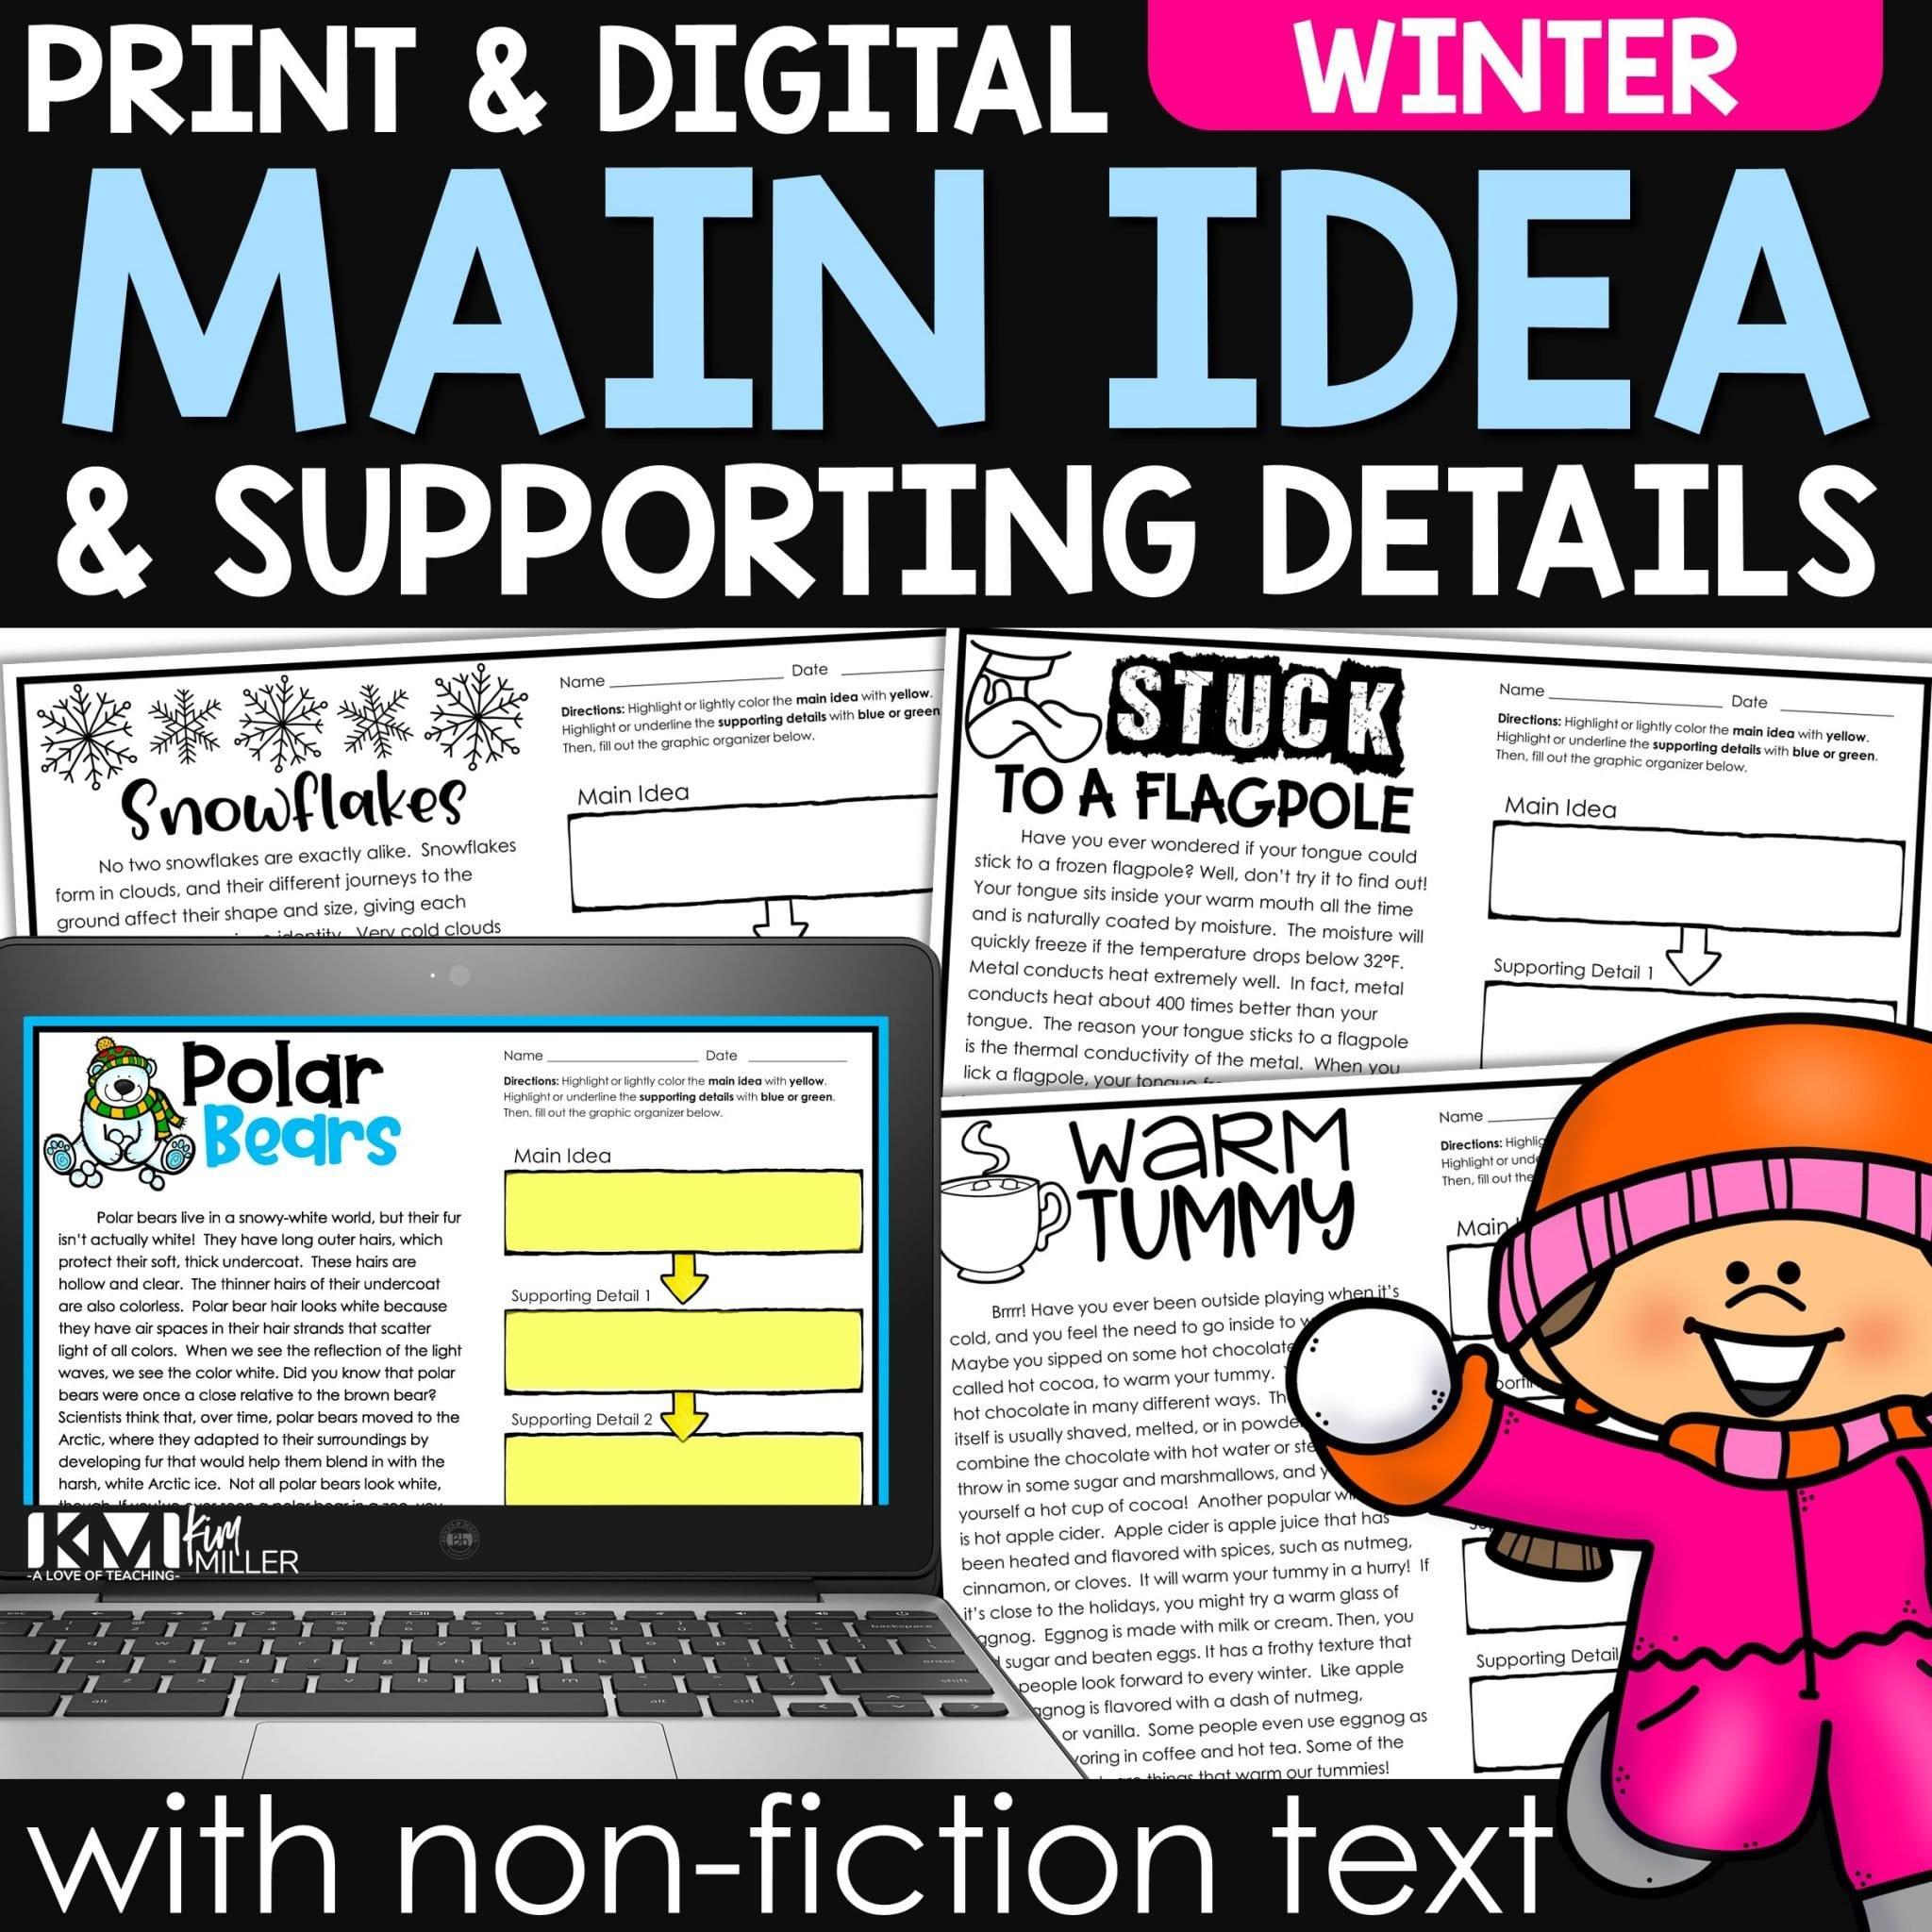 Winter Main Idea and Supporting Details with Non-Fiction Text